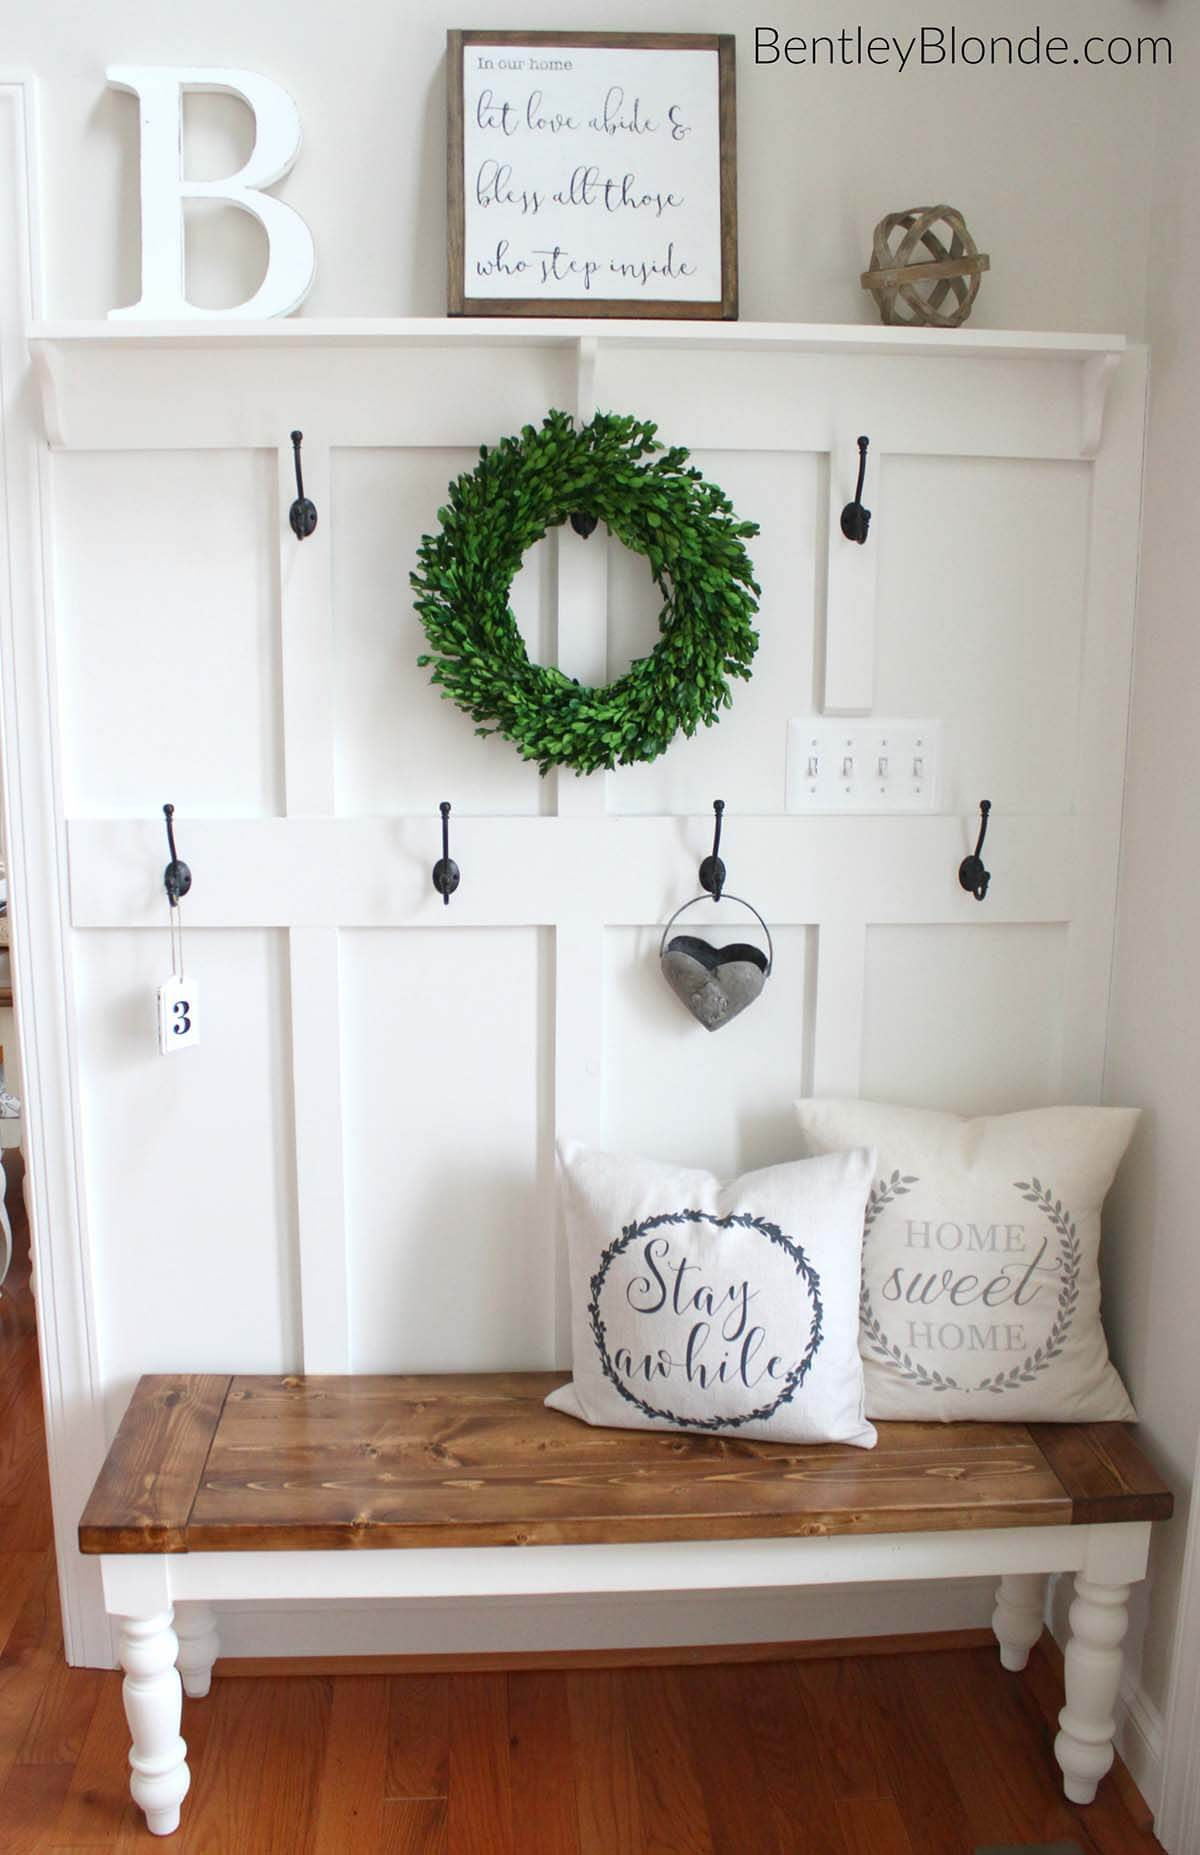 25 Best DIY Entryway Bench Projects Ideas and Designs